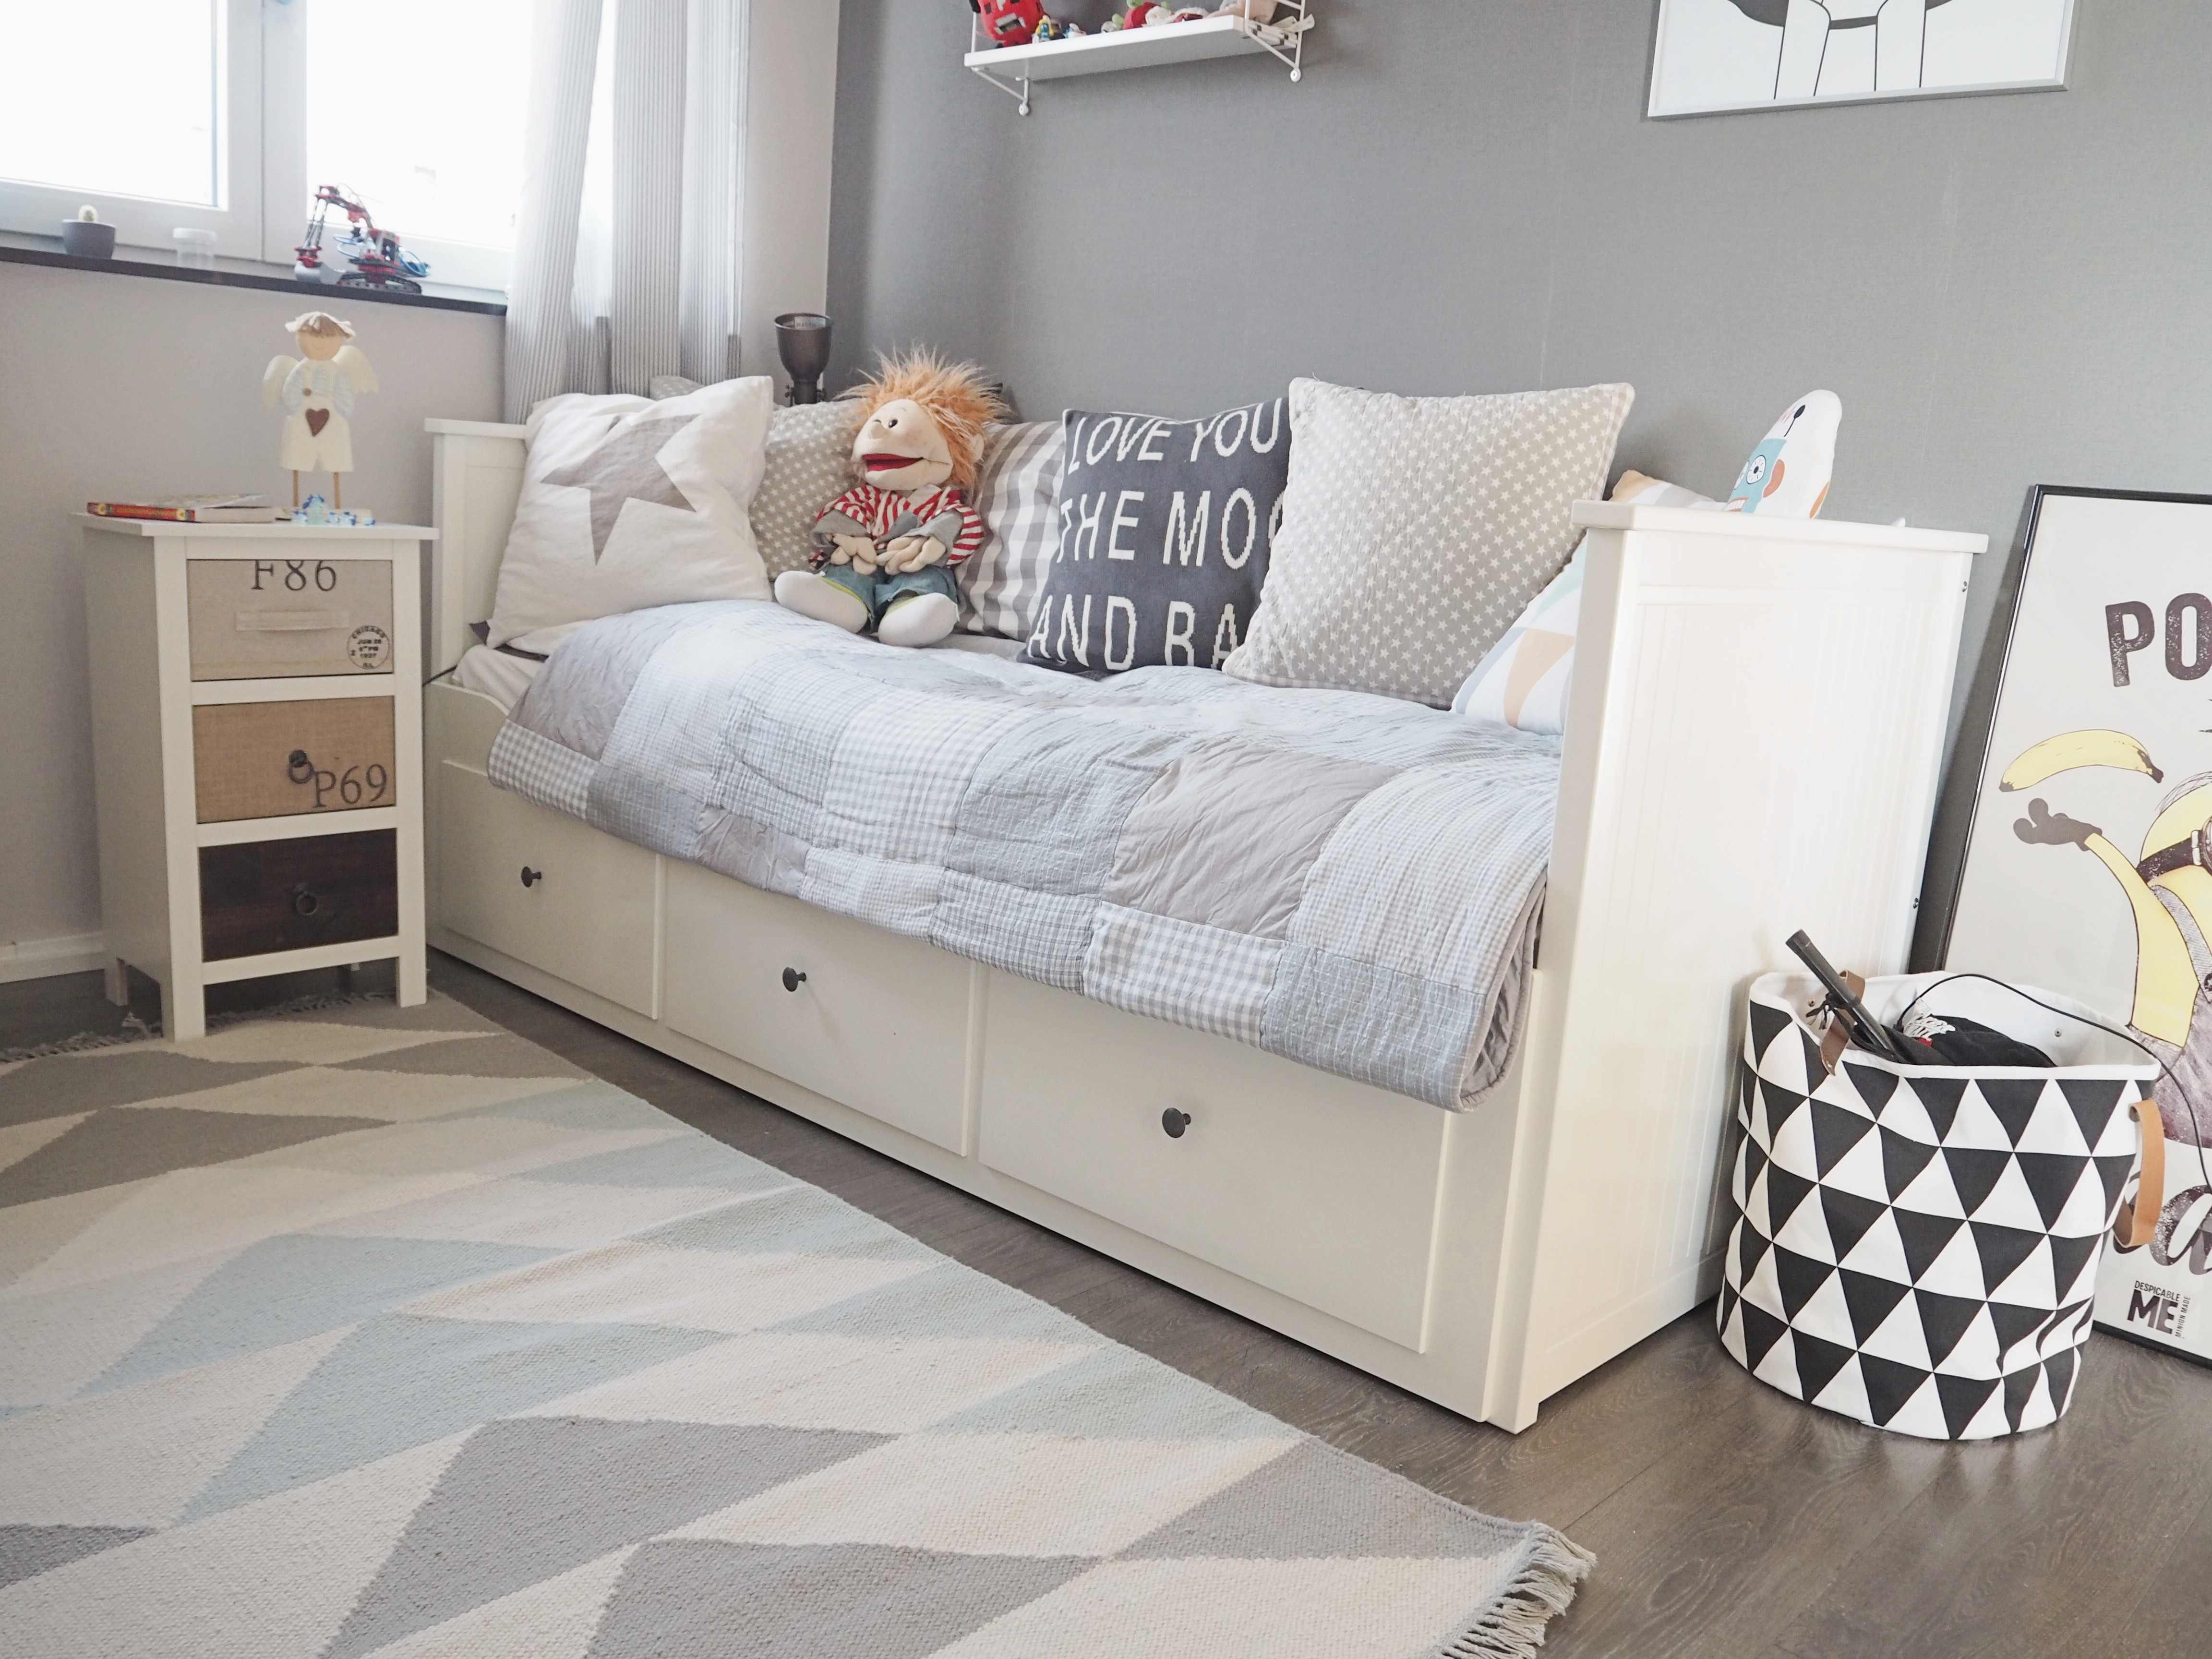 dreiraumhaus kinderraeume kinderzimmer roomtour ikea. Black Bedroom Furniture Sets. Home Design Ideas